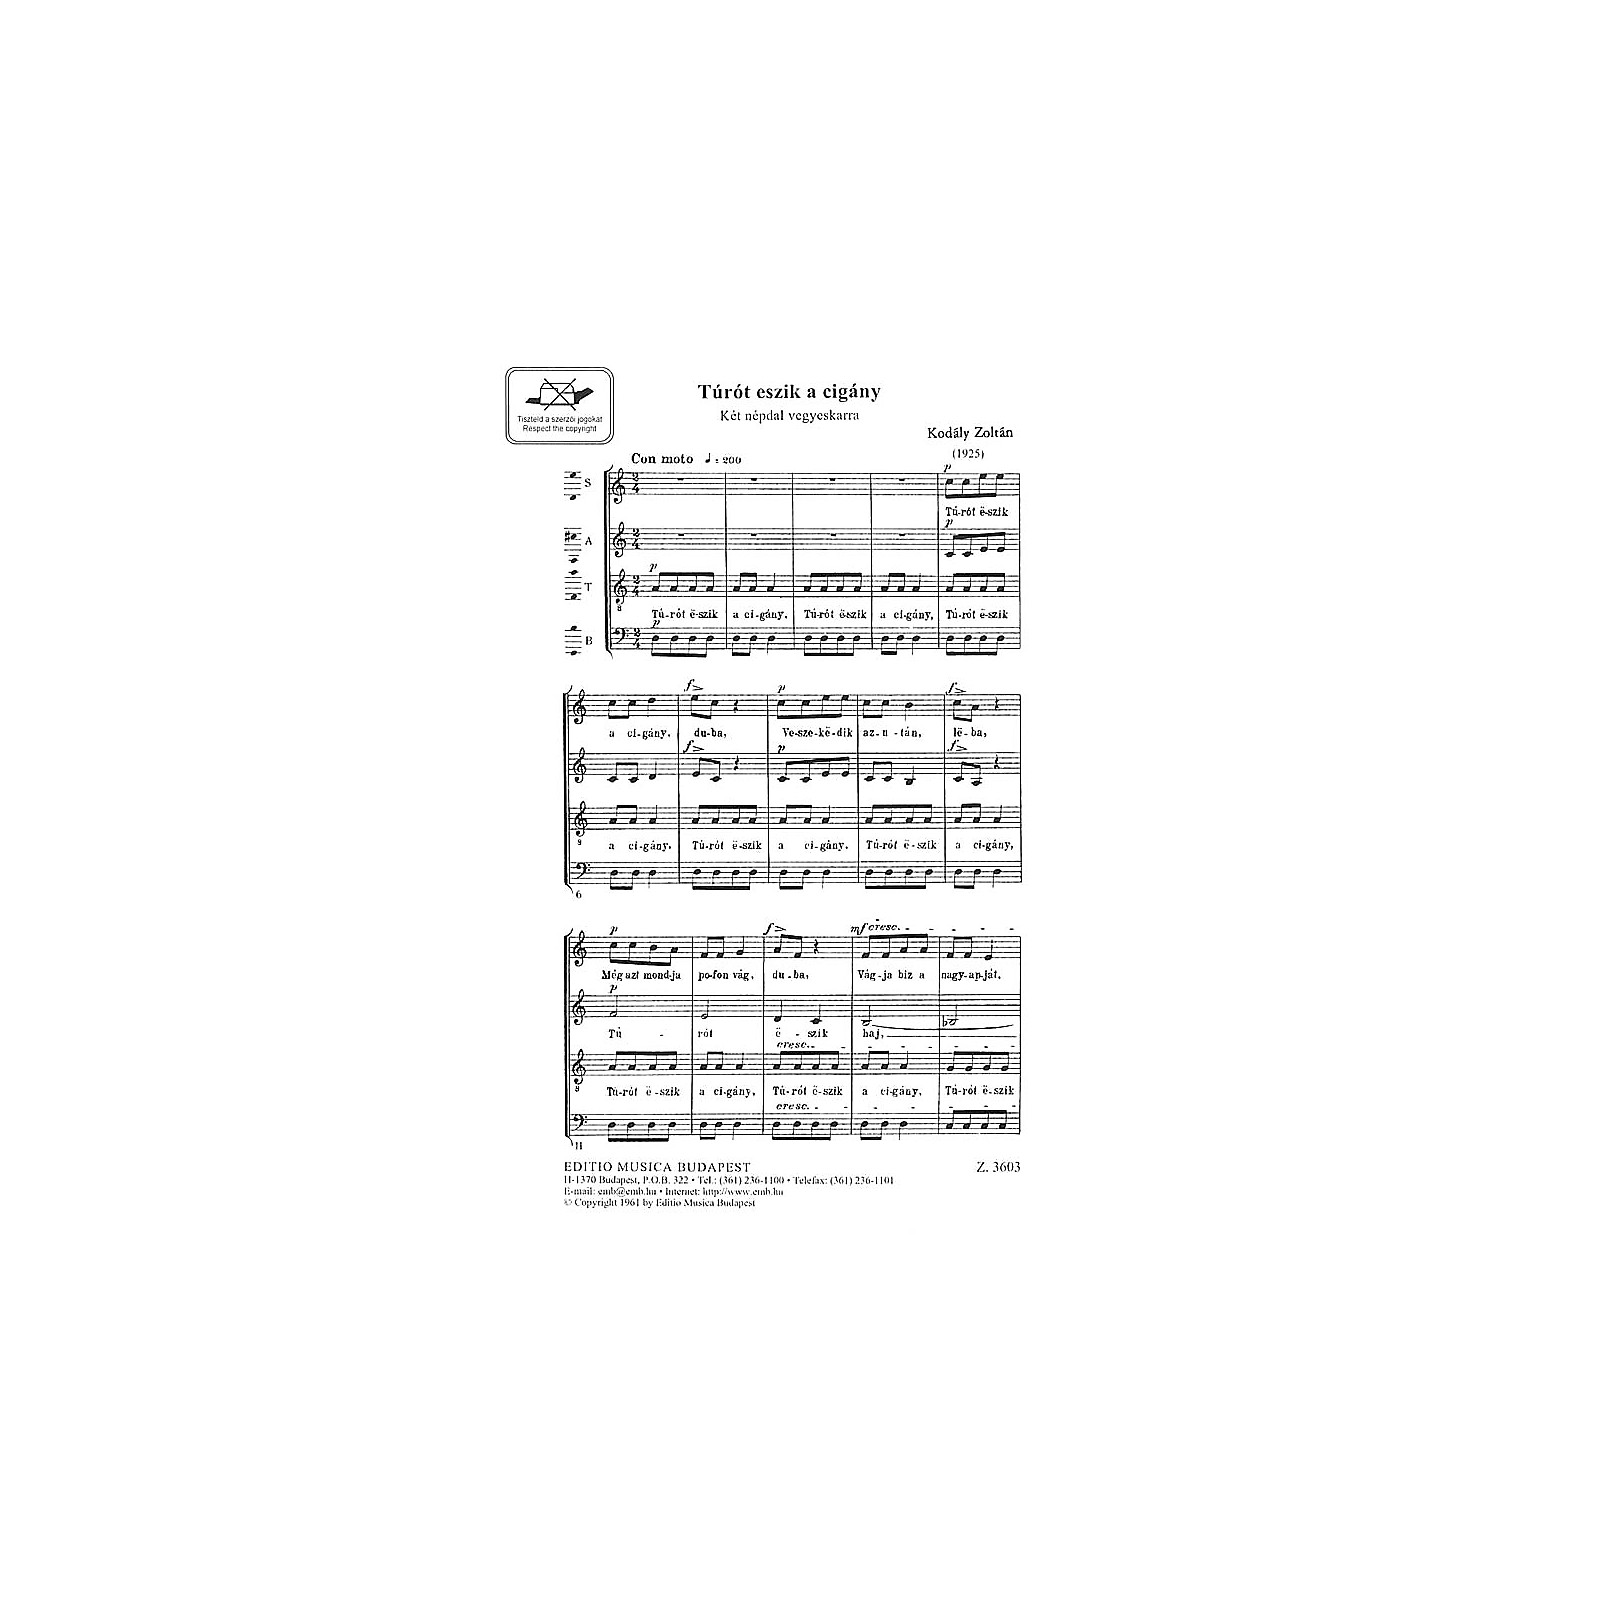 Editio Musica Budapest See the Gypsy (Turot eszik a cigany) (SATB) Composed by Zoltán Kodály